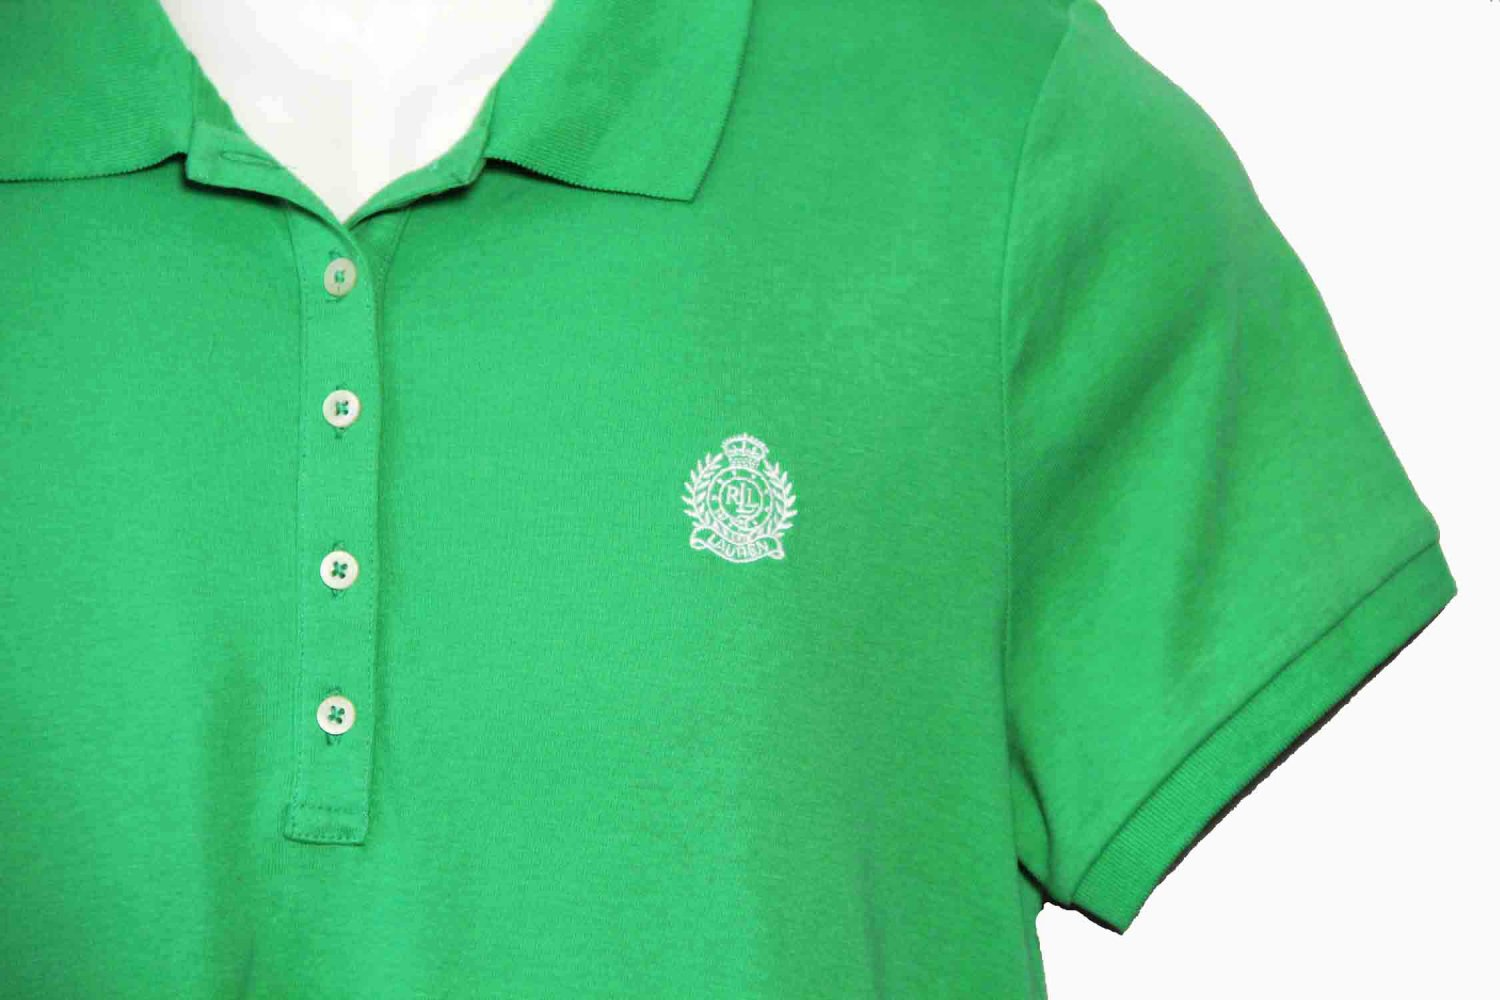 Womens Ralph Lauren Crested Polo Shirt Green Size Large